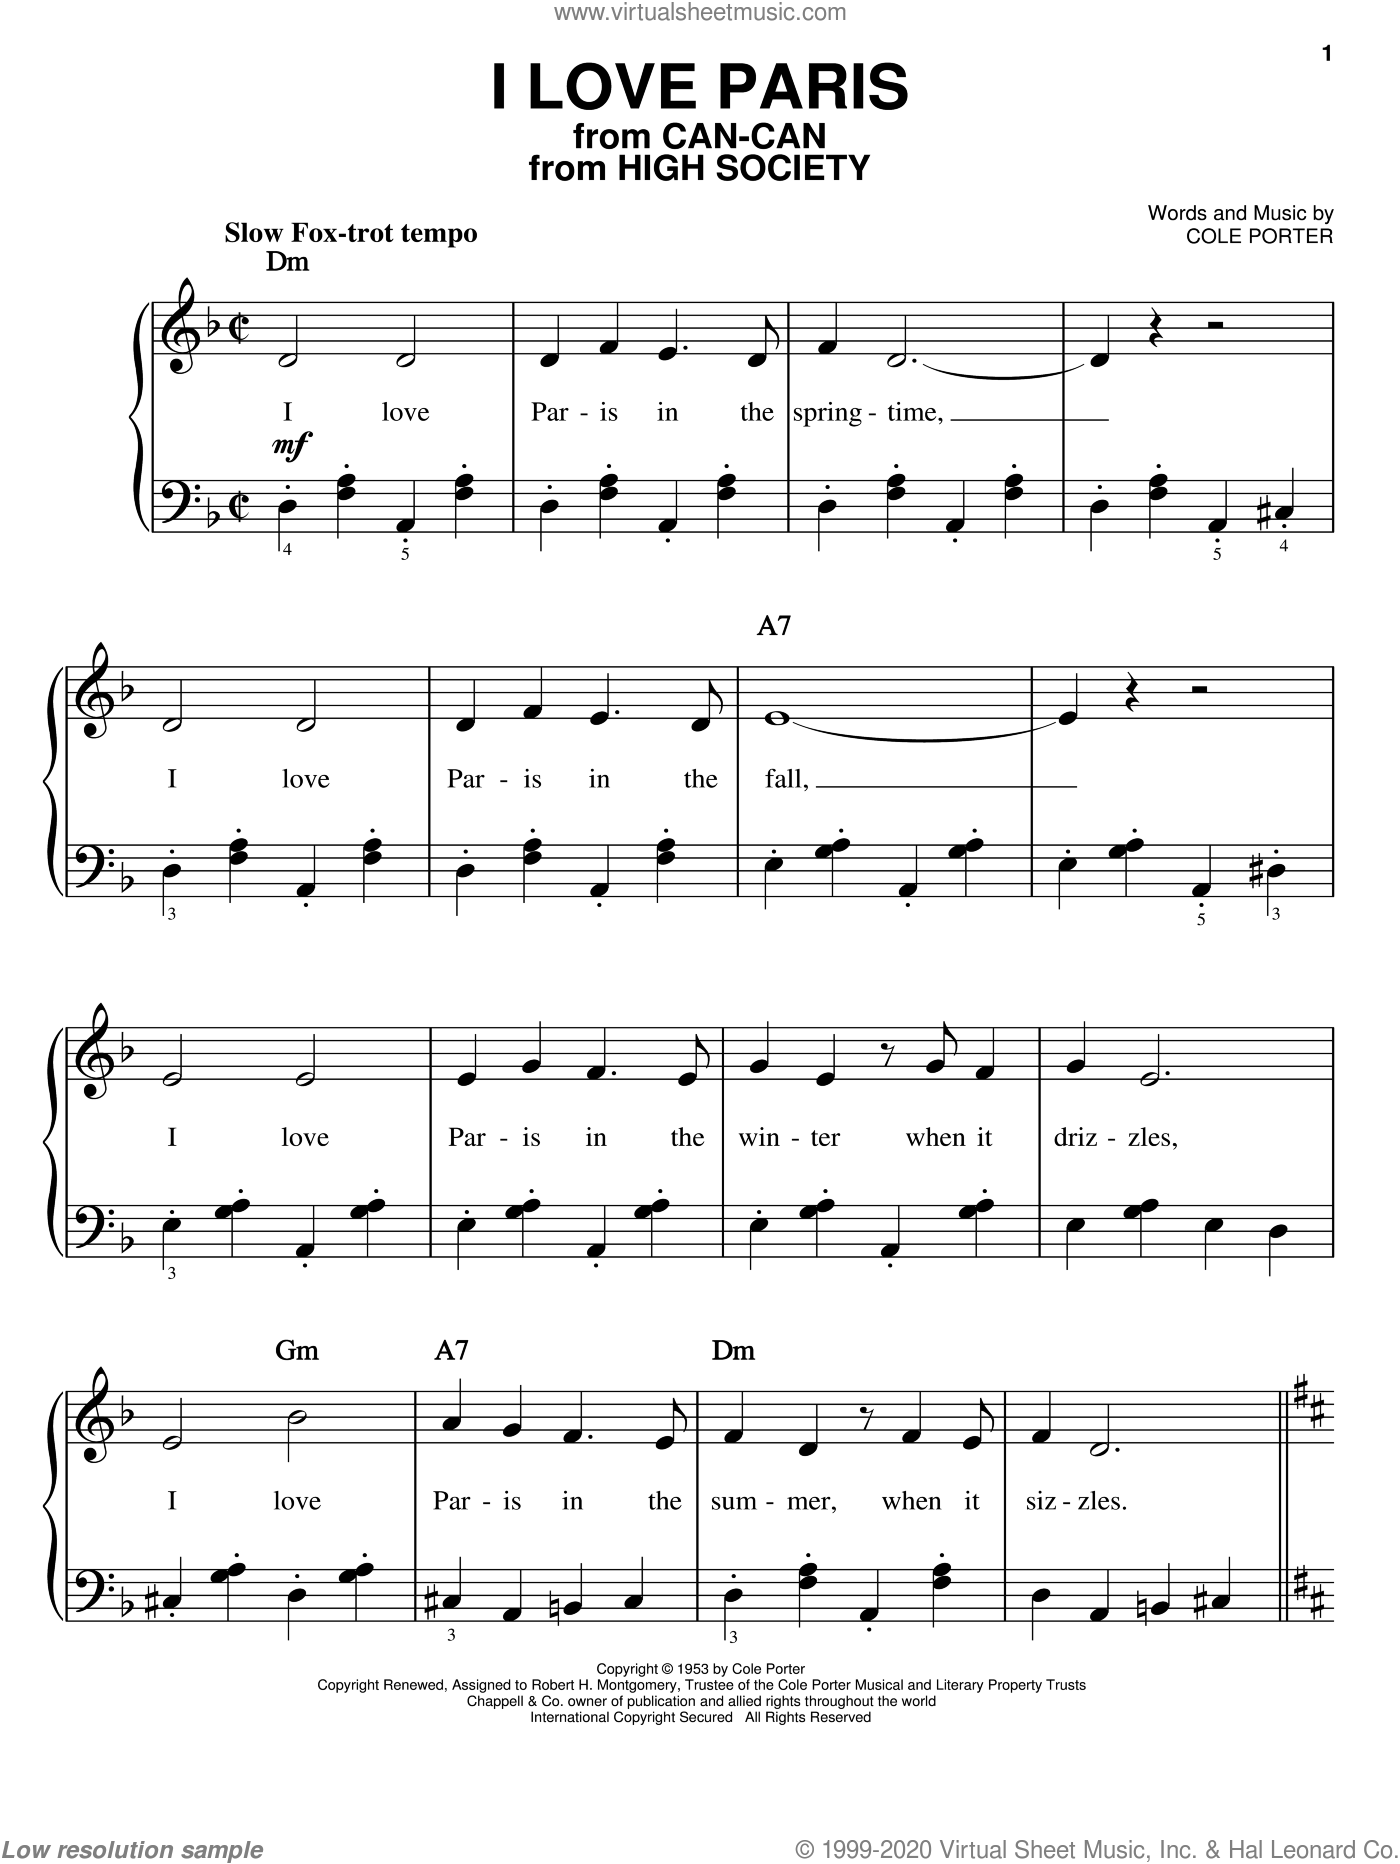 I Love Paris sheet music for piano solo by Cole Porter